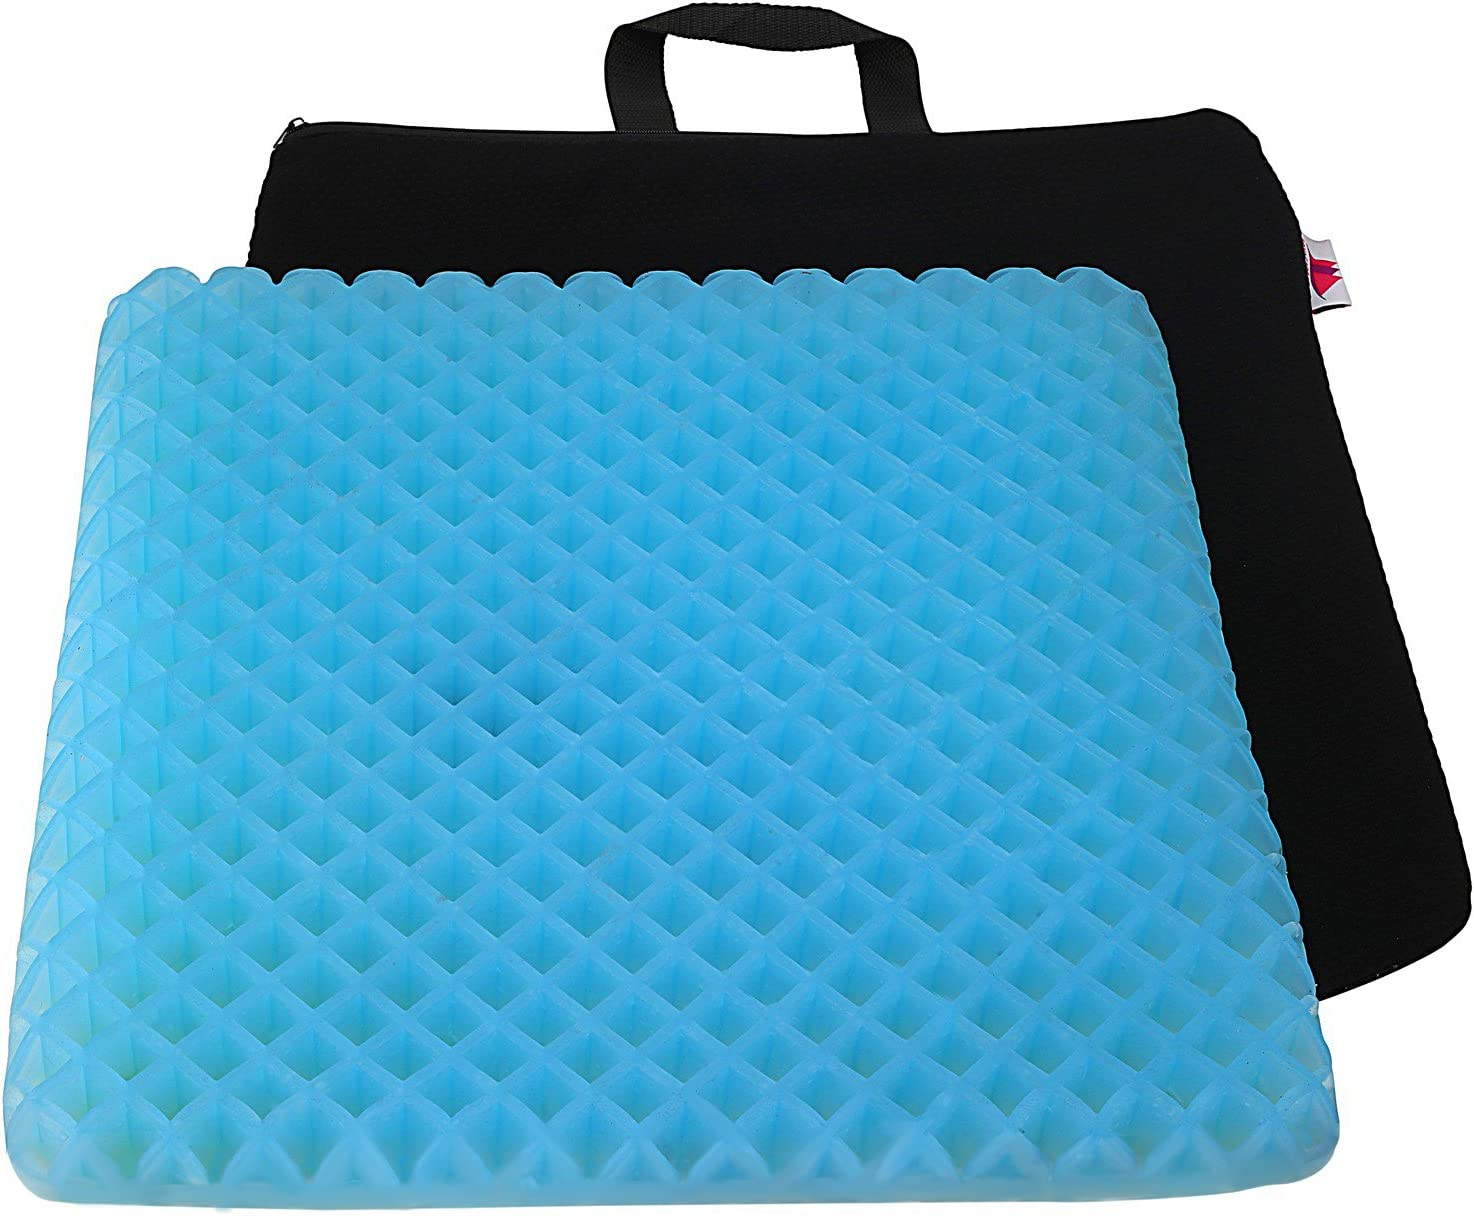 "FOMI Premium Firm All Gel Orthopedic Seat Cushion Pad (15"" x 15"") for Car, Office Chair, Wheelchair, or Home. Pressure Sore Relief. Ultimate Gel Comfort, Prevents Sweaty Bottom, Durable, Portable 718jwuS2aWL"